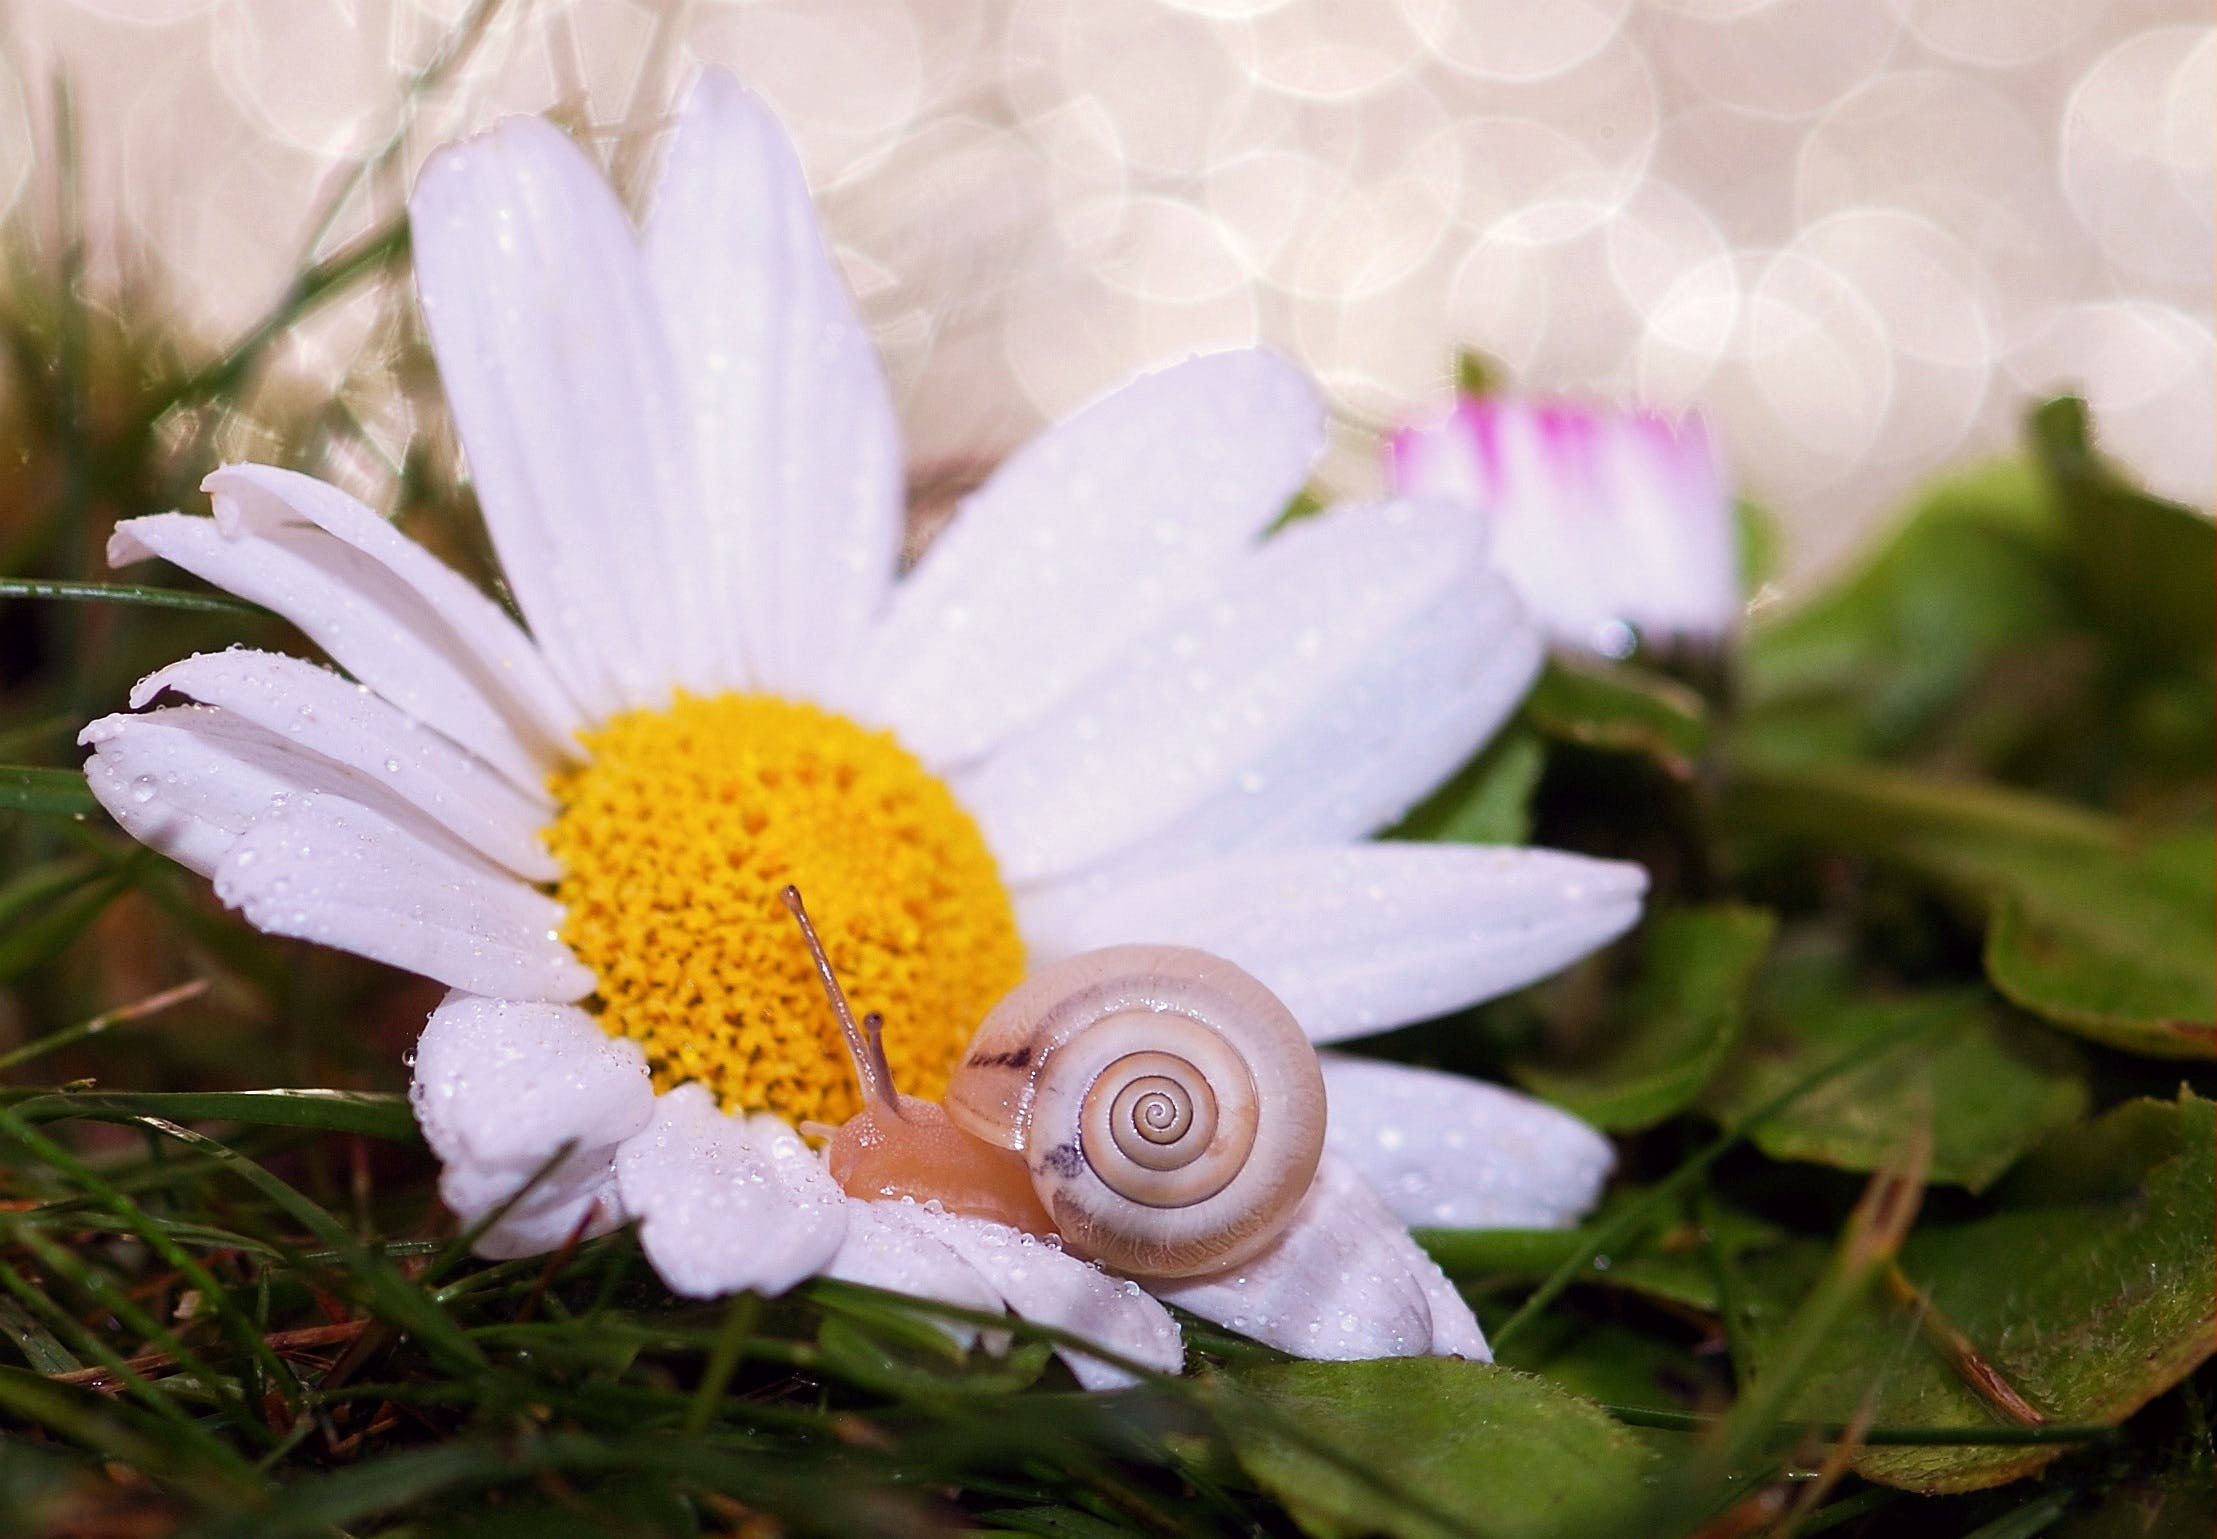 Gray Snail on White and Yellow Daisy Flower Close-up Photography